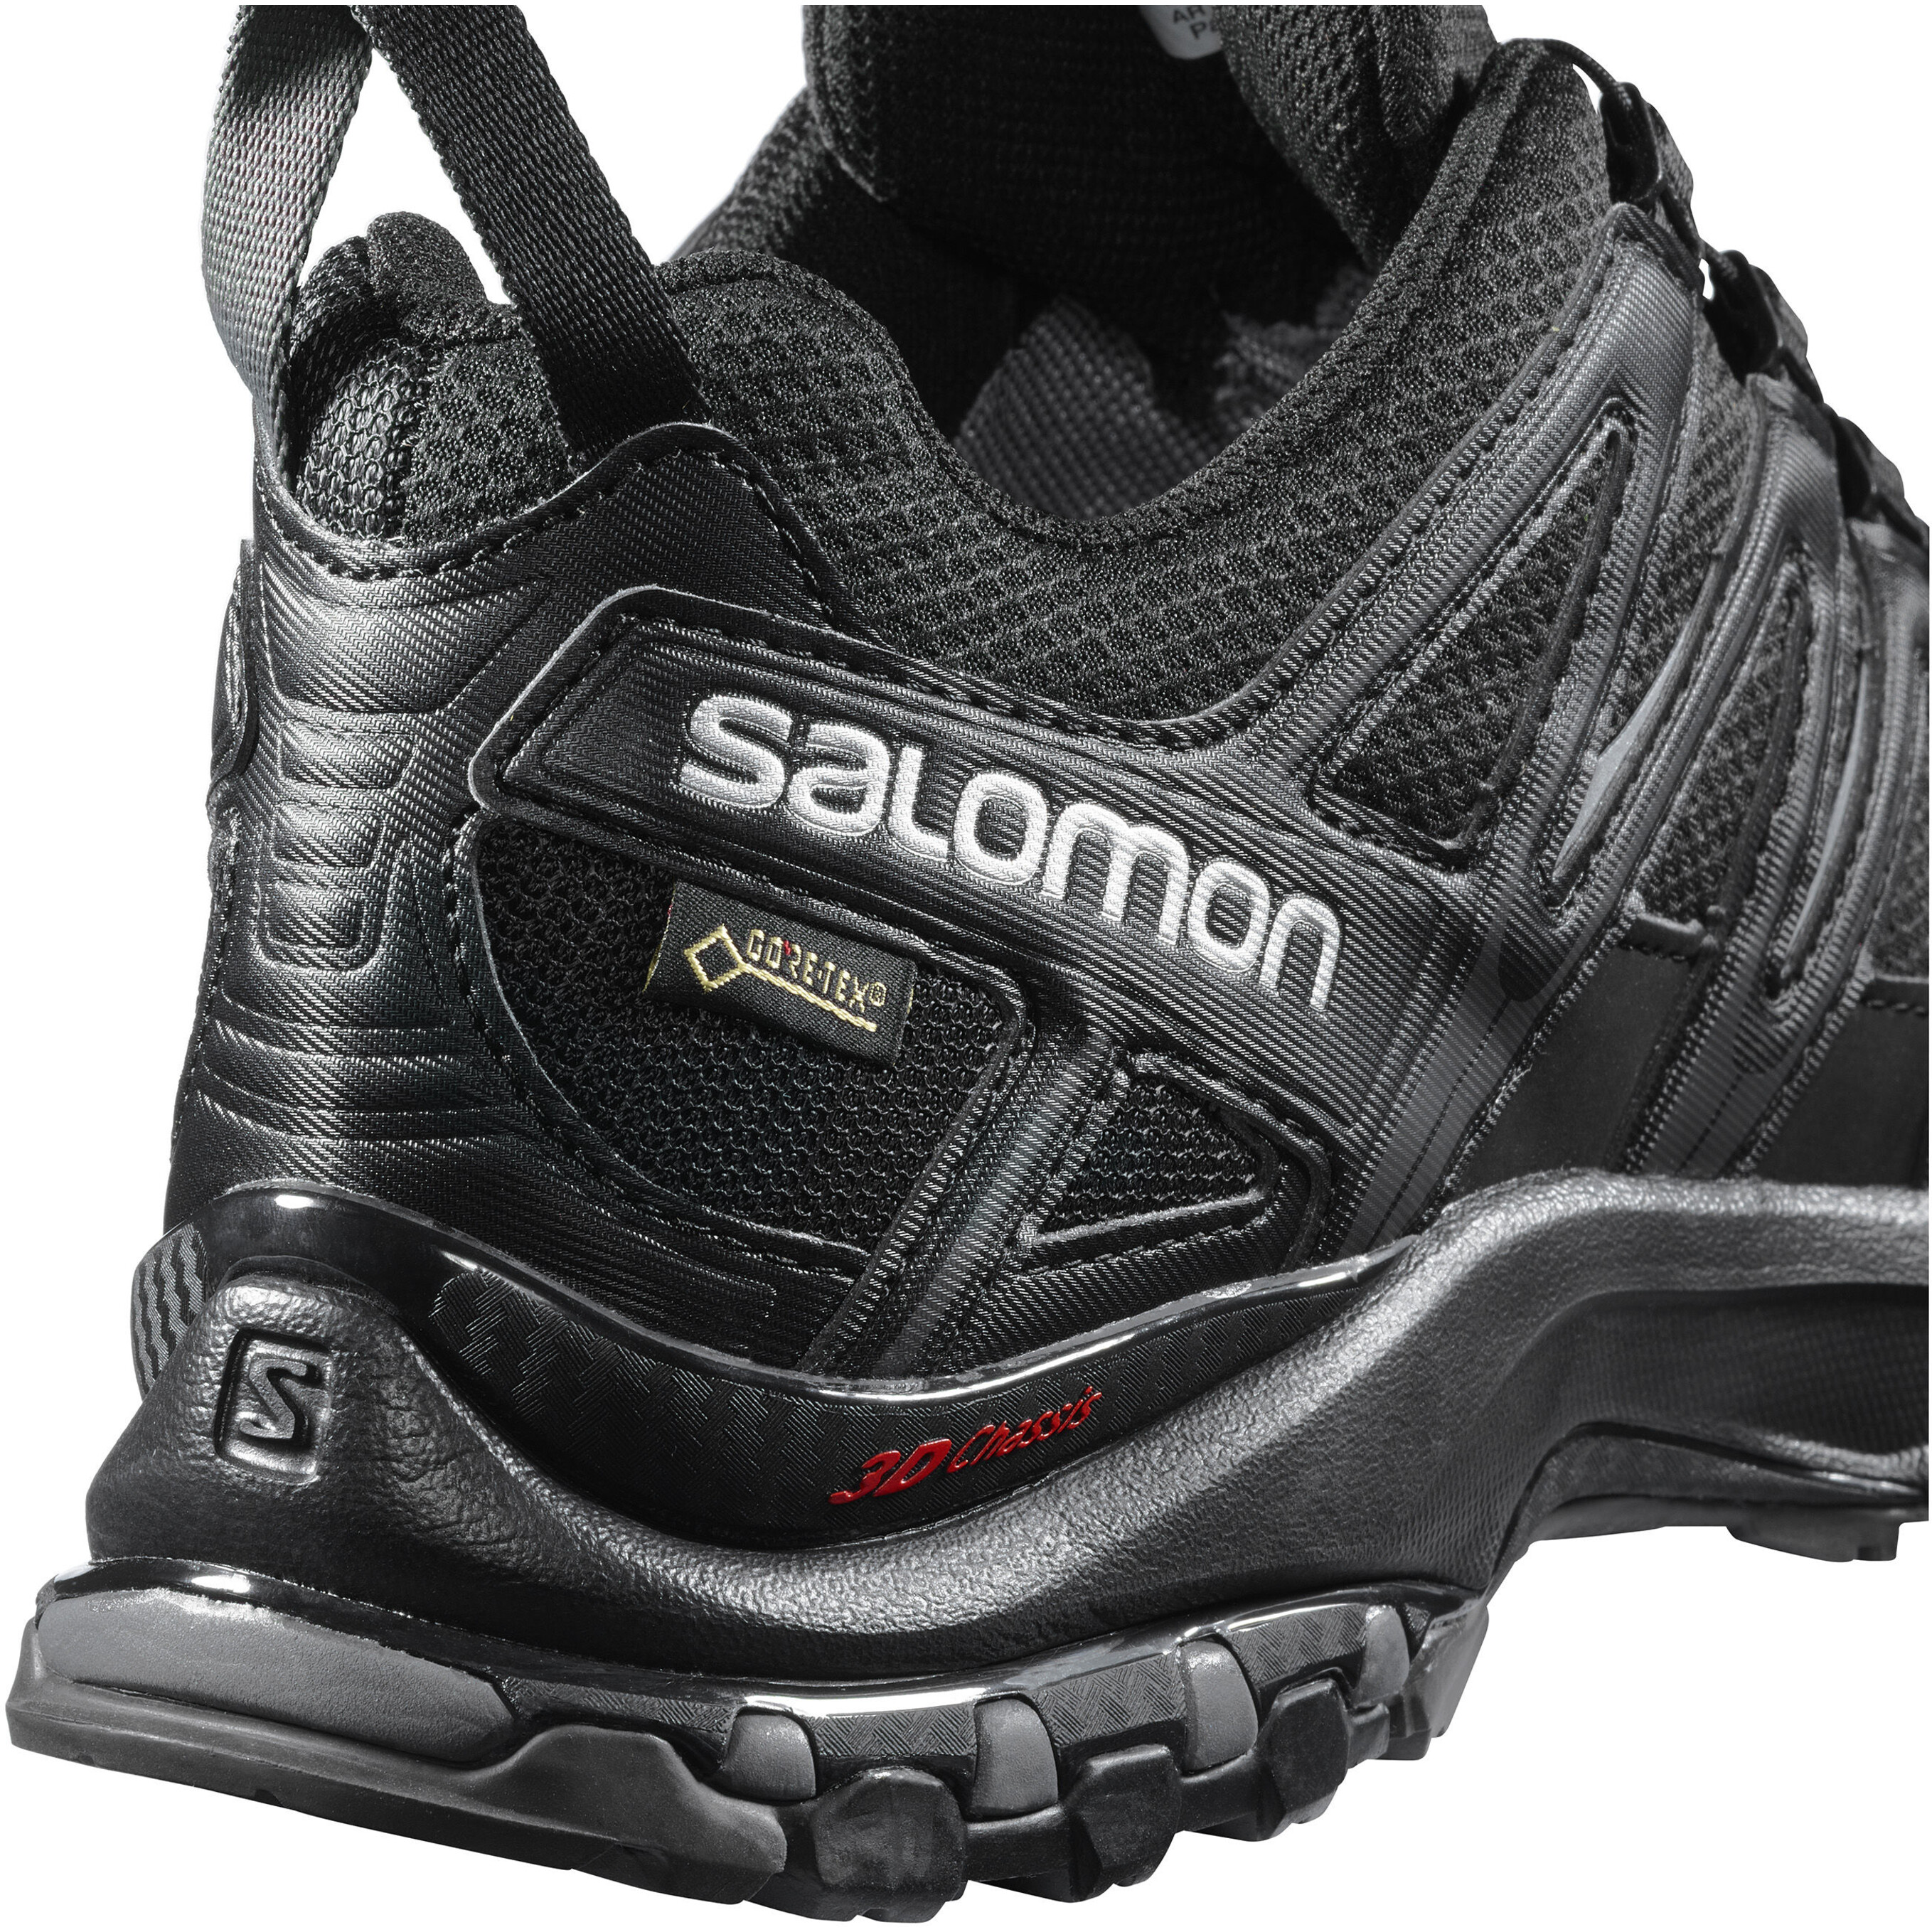 huge selection of 44761 a8877 Salomon XA Pro 3D GTX Löparskor Herr grå svart